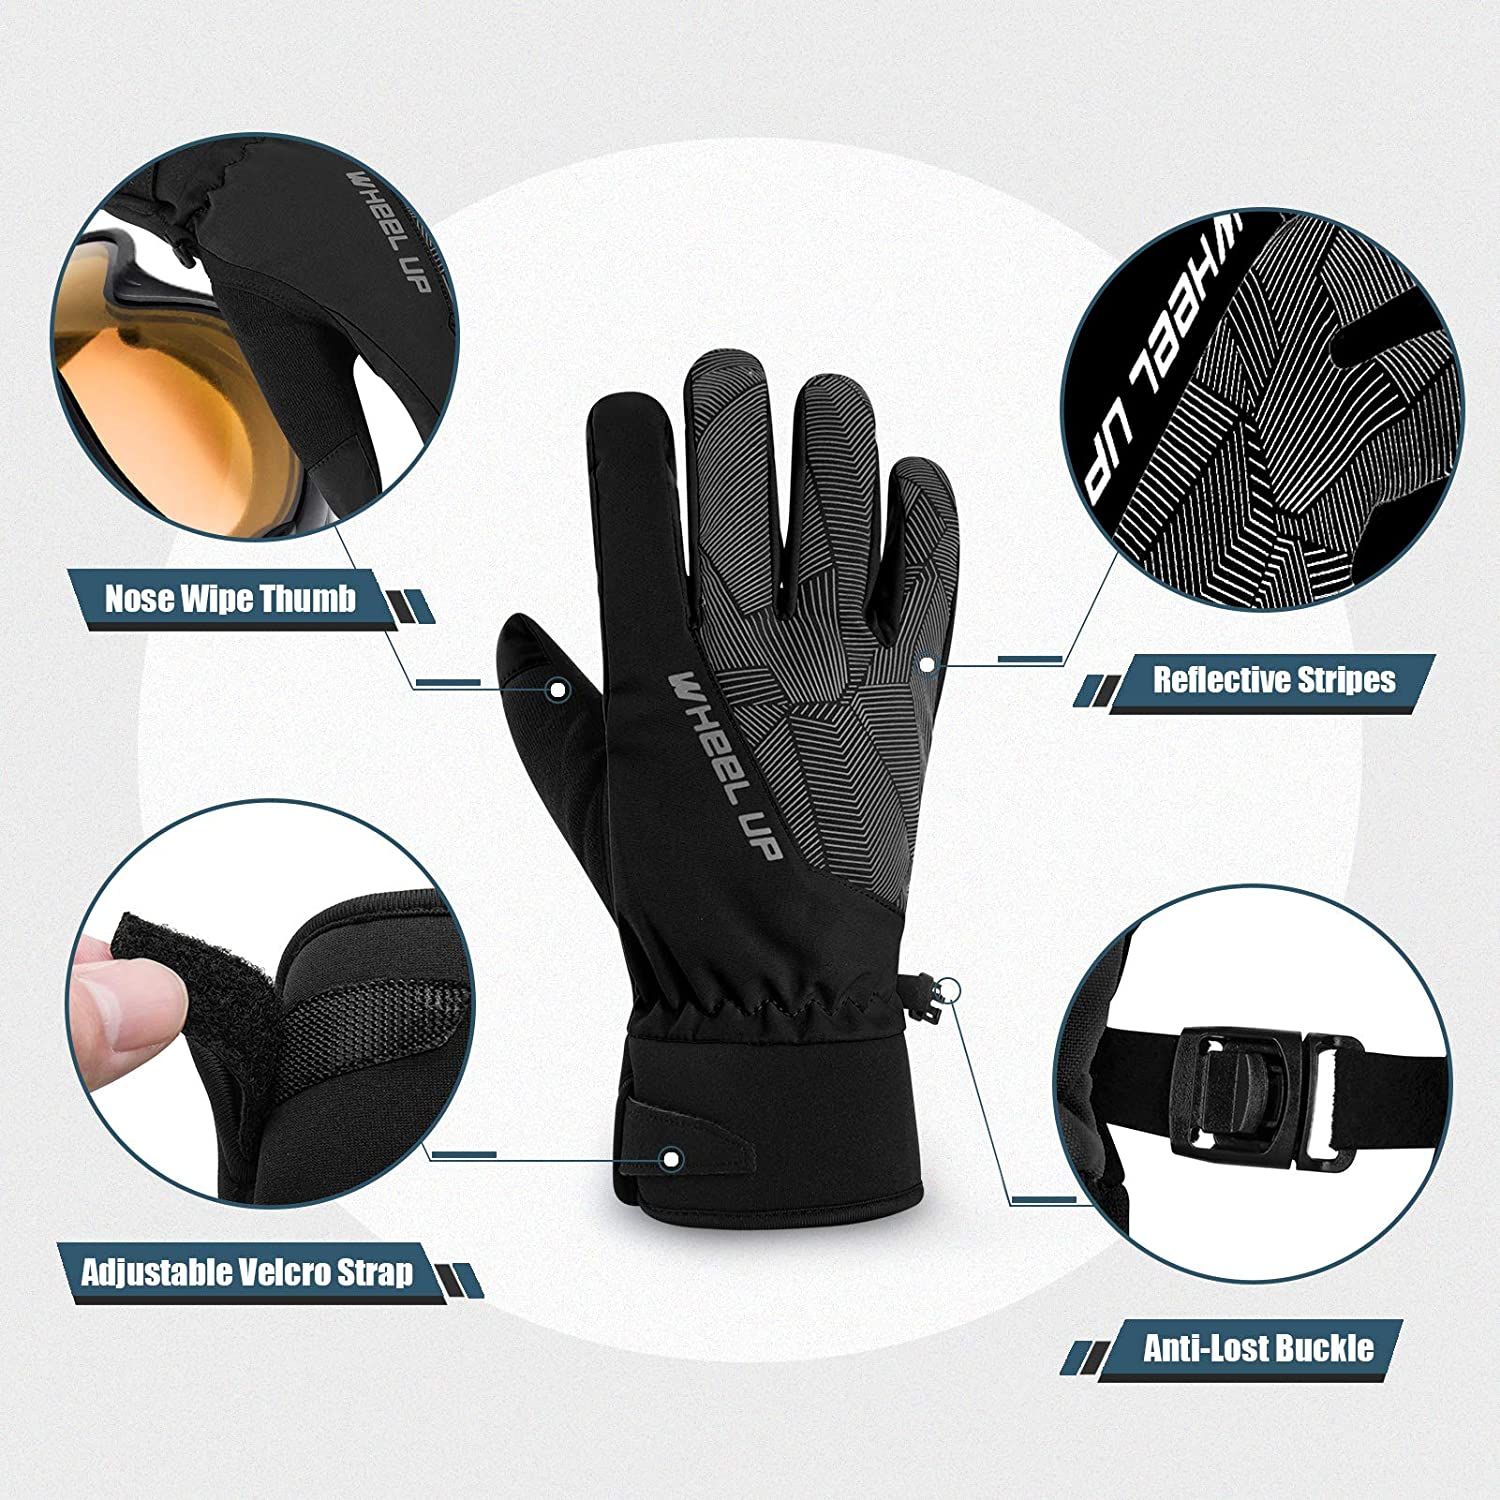 Hikenture Winter Bike Gloves Windproof Warm Cycling Gloves for Men and Women Anti-Slip Cold Weather MTB Gloves for Cycling Climbing Thermal Waterproof Ski Gloves Snow Gloves Skiing Hiking